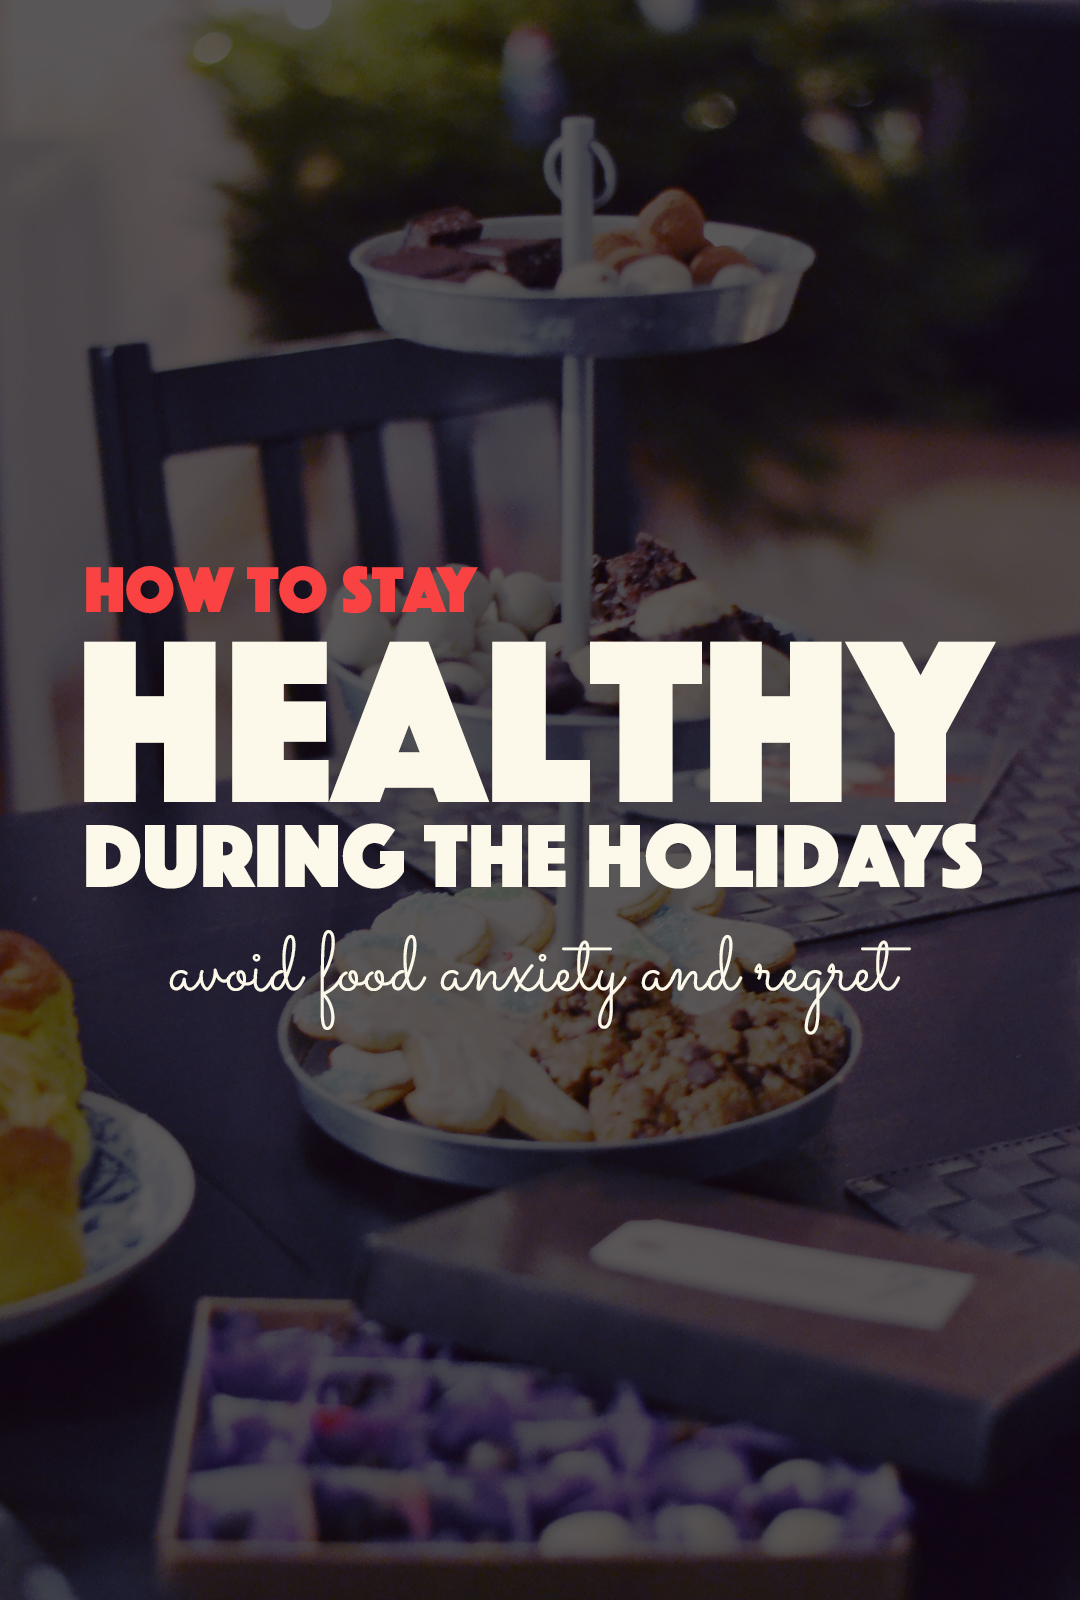 How to Stay Healthy During the Holidays |http://BananaBloom.com #health #holidays #christmas #healthy